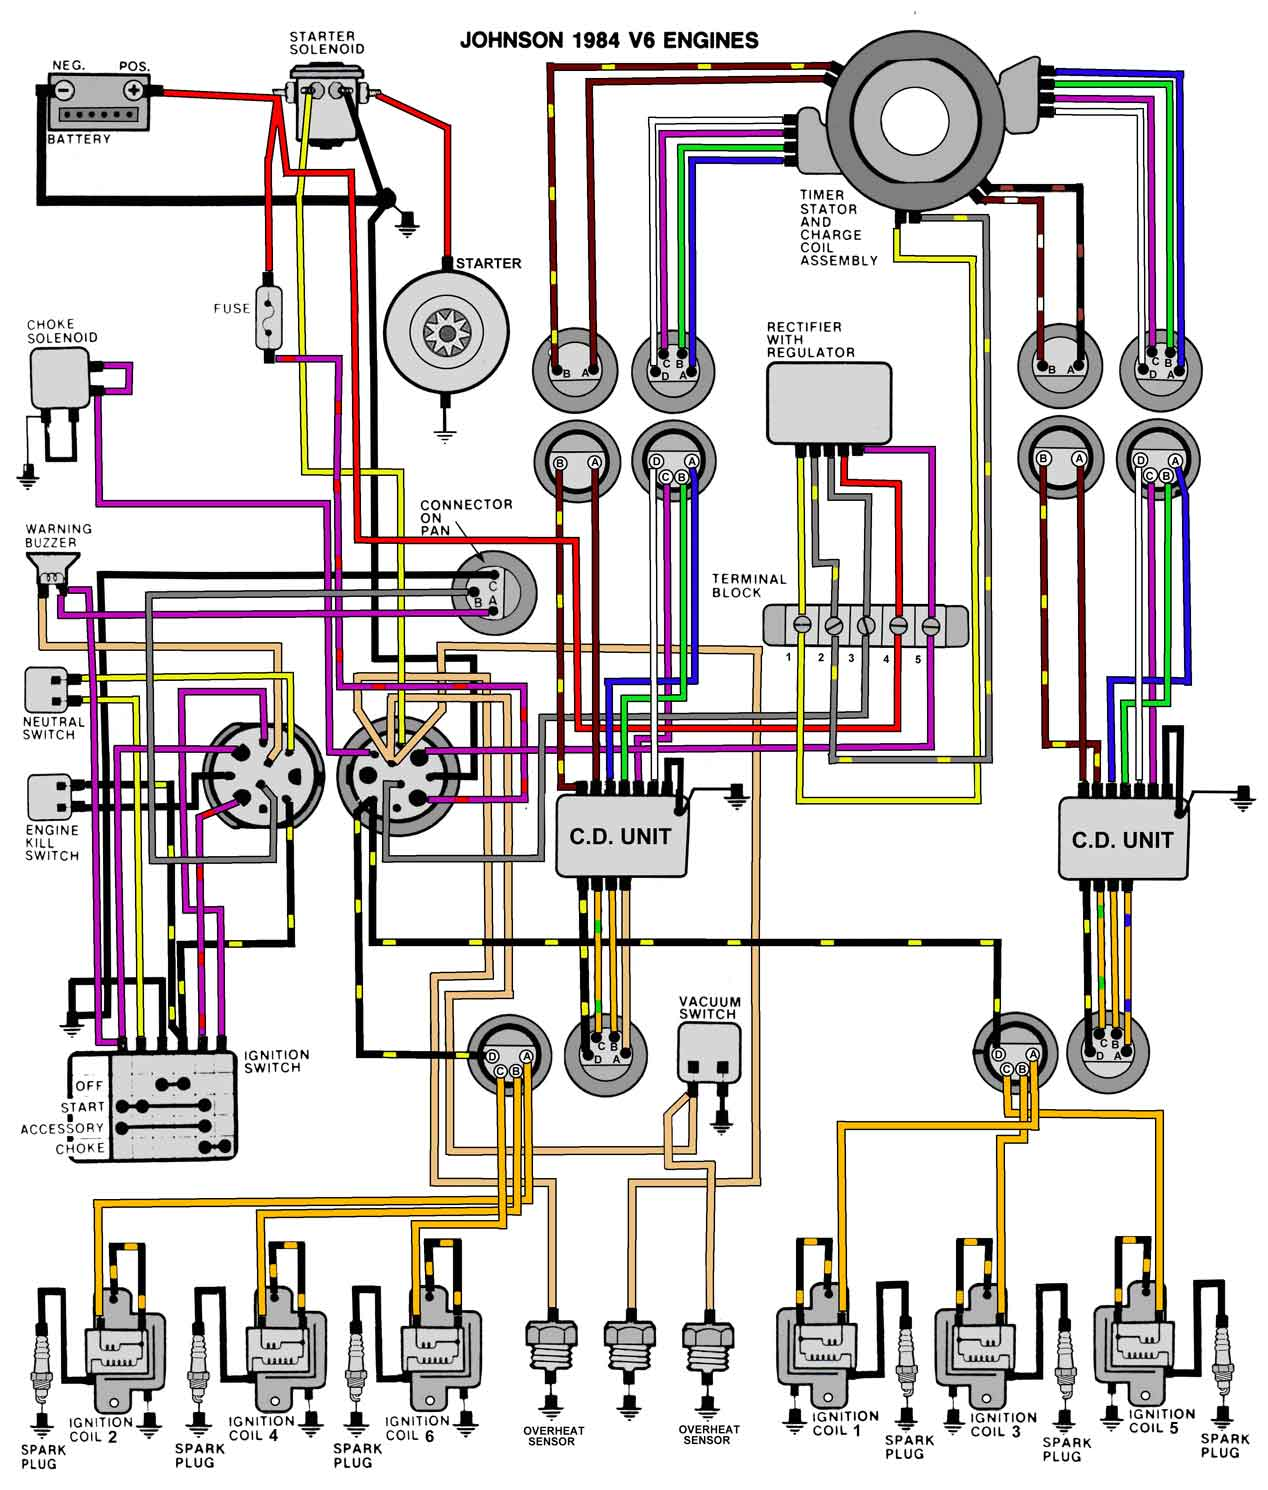 84_V6 mastertech marine evinrude johnson outboard wiring diagrams omc wiring harness diagram at gsmx.co